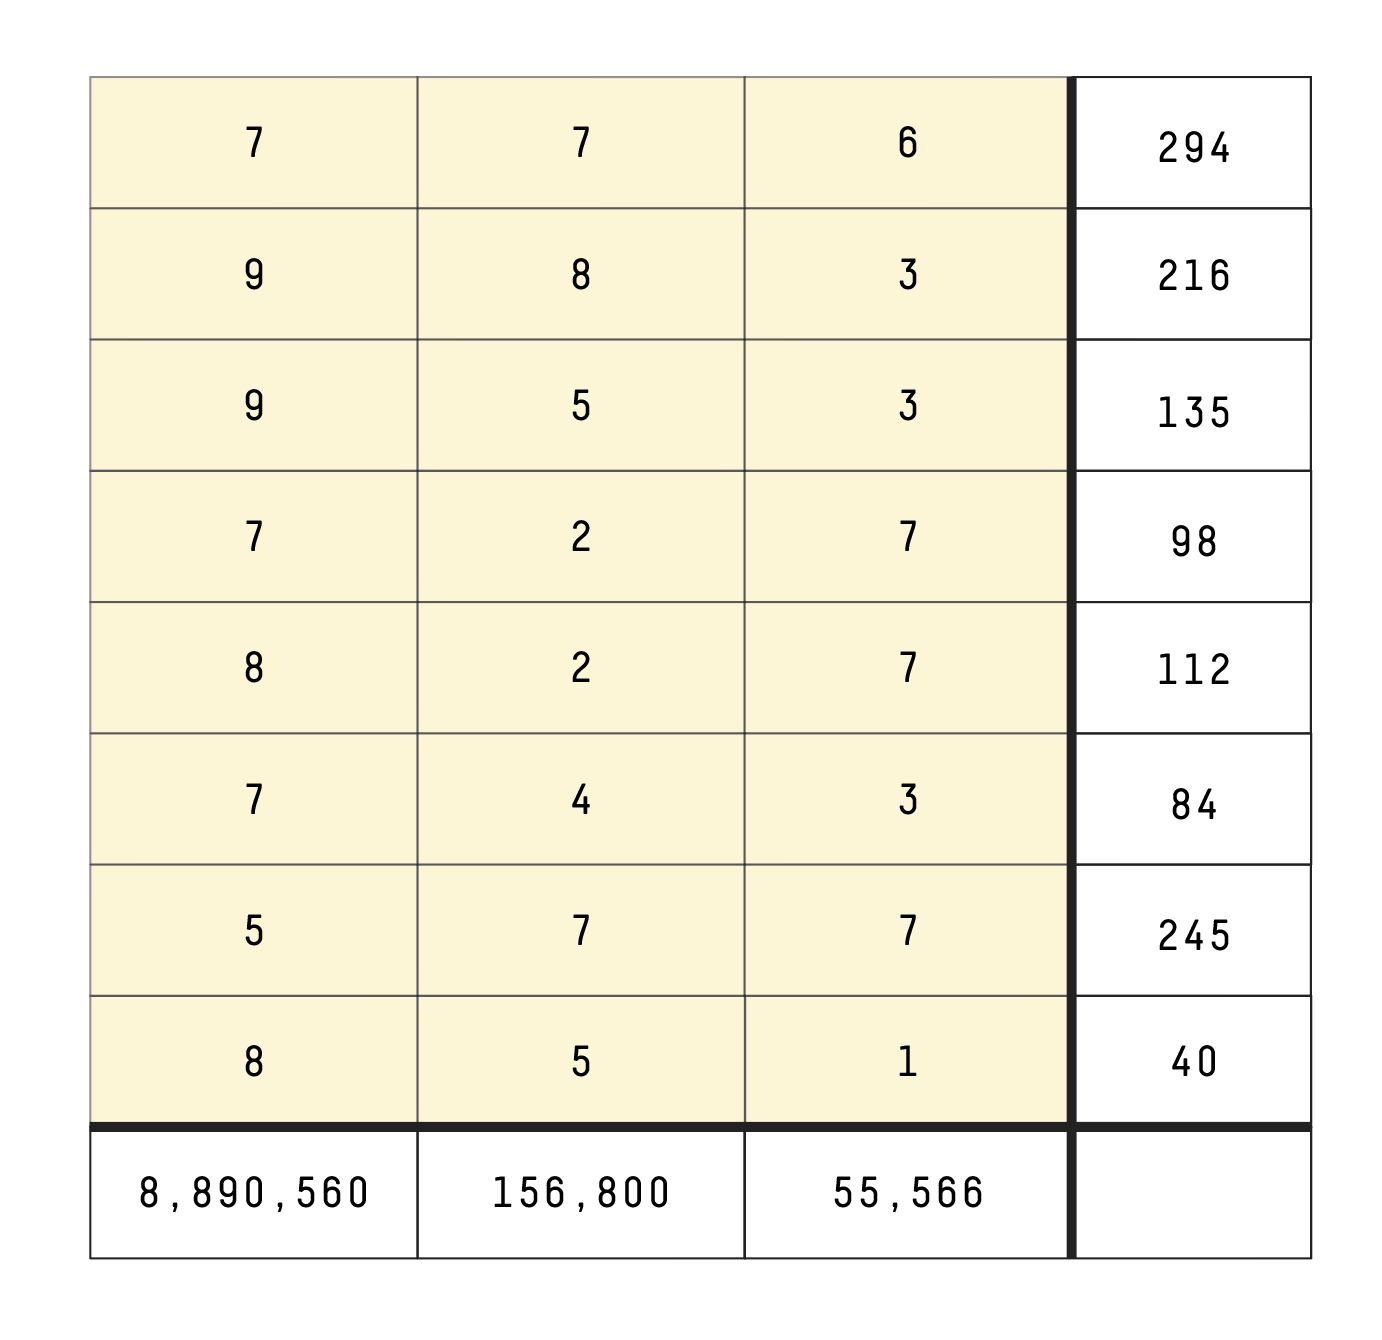 Table for eight three-digit numbers. The products of the three digits in each number are, respectively, 294, 216, 135, 98, 112, 84, 245 and 40. The product of the hundreds digits is 8,890,560. The product of the tens digit is 156,800. The product of the ones digit is 55,566. The eight numbers turned out to be: 776, 983, 953, 727, 827, 743, 577 and 851.